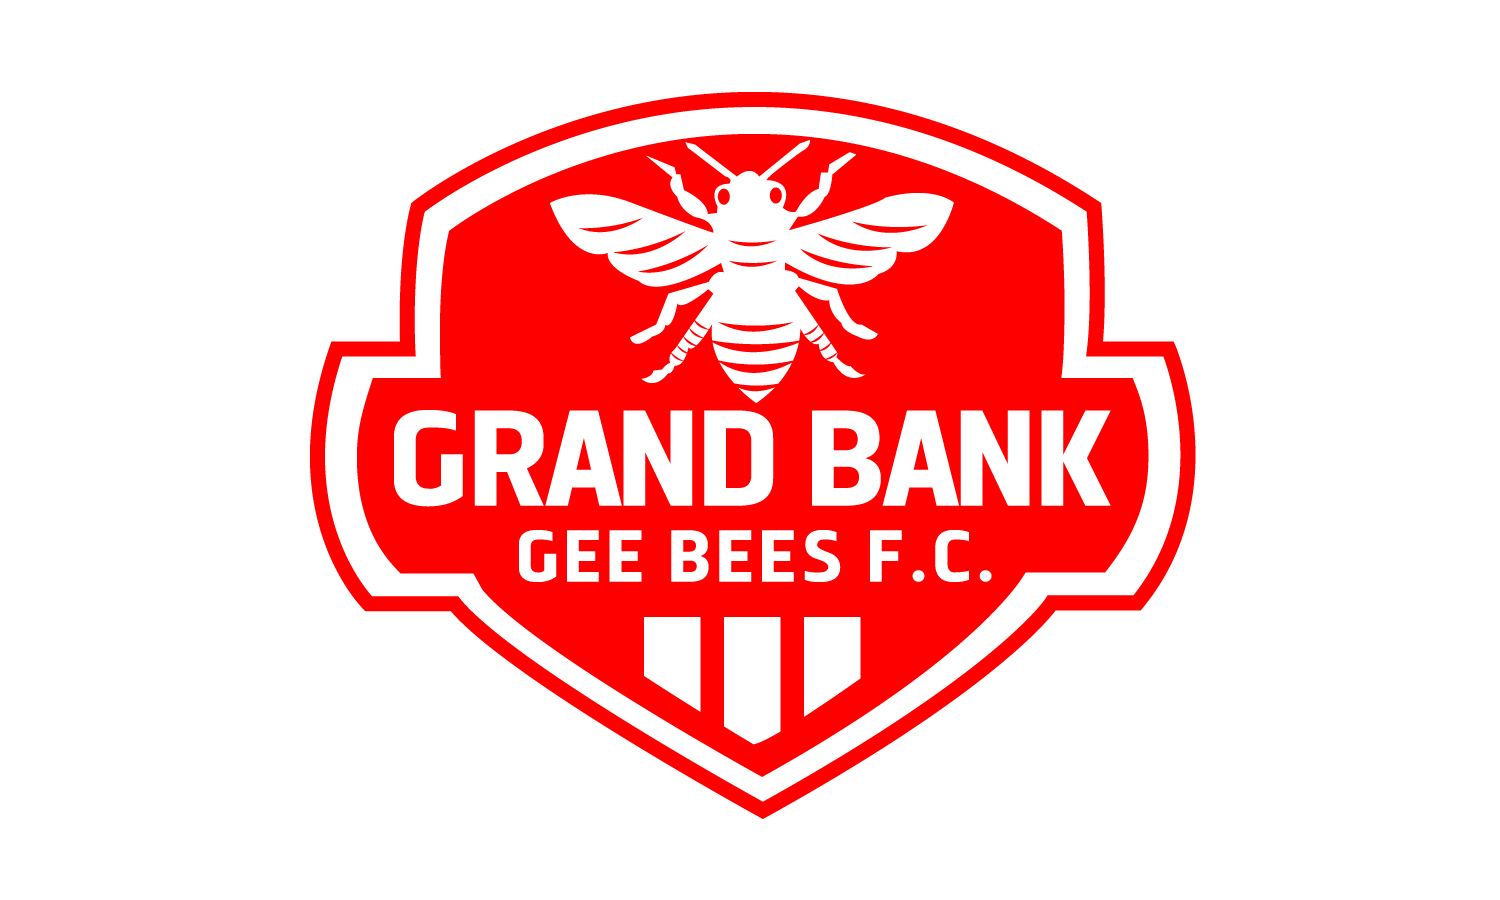 Grand Bank Gee Bees F.C.